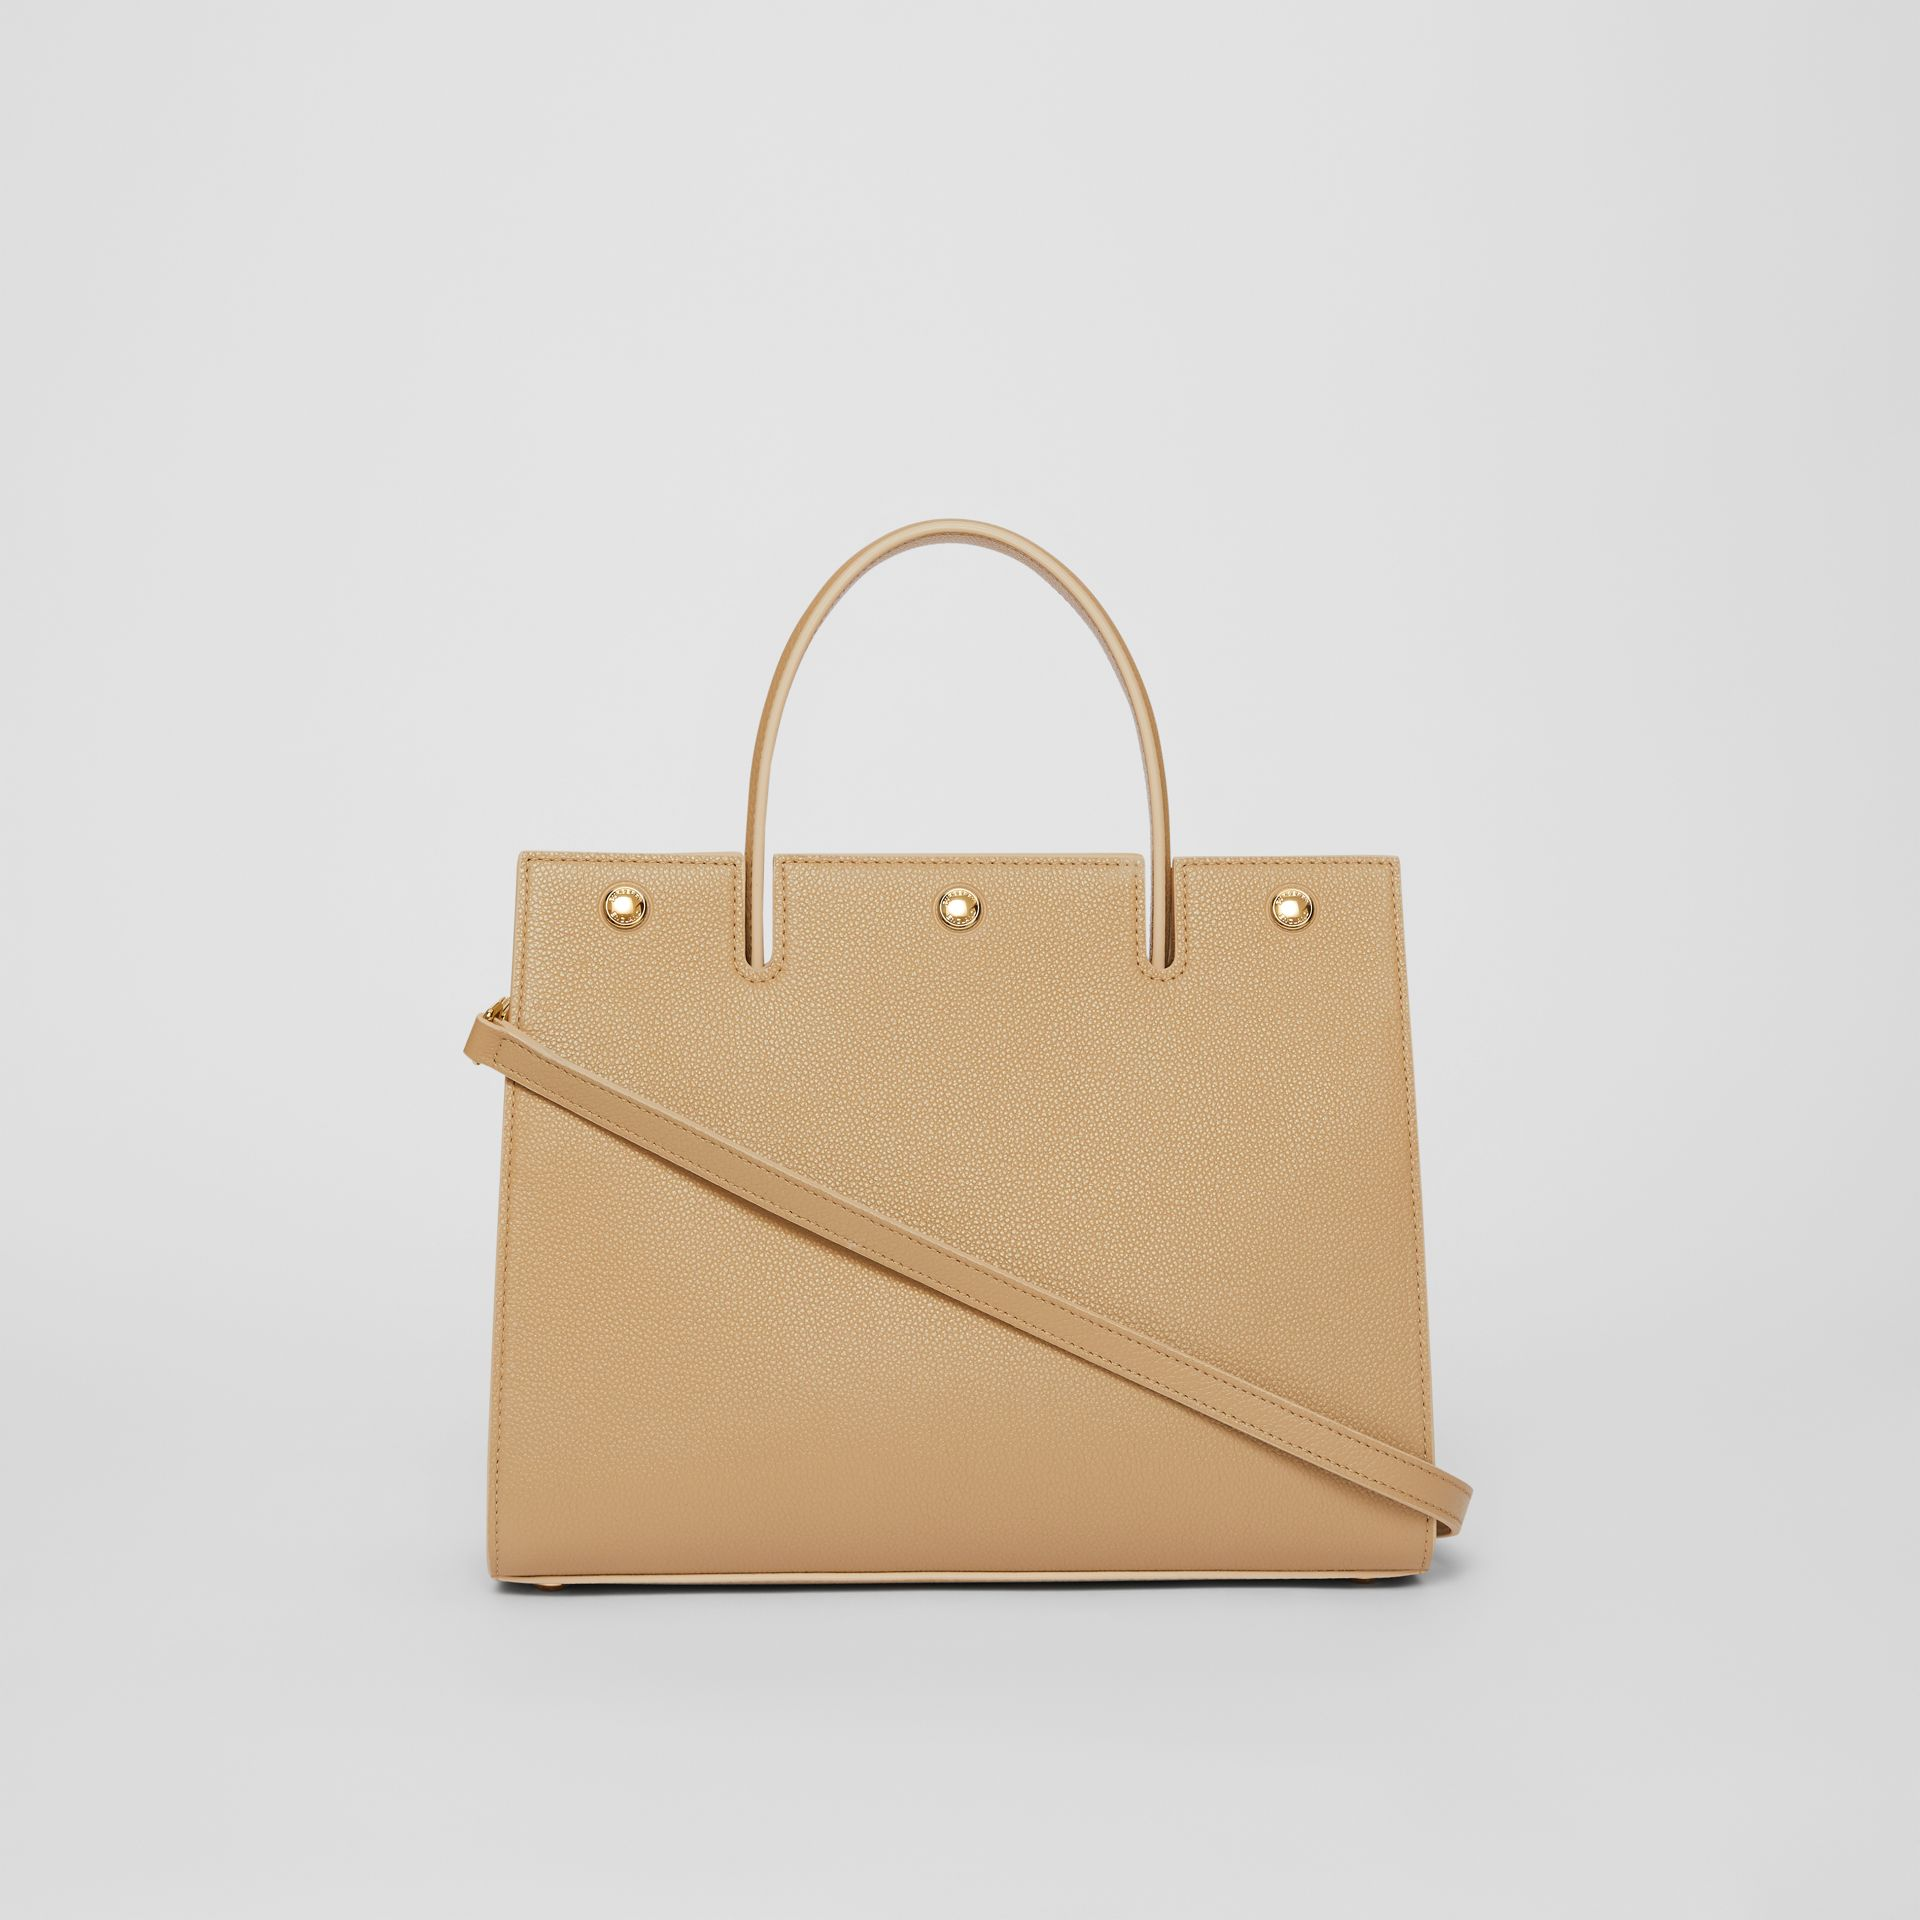 Small Leather Title Bag in Honey - Women | Burberry Australia - gallery image 7